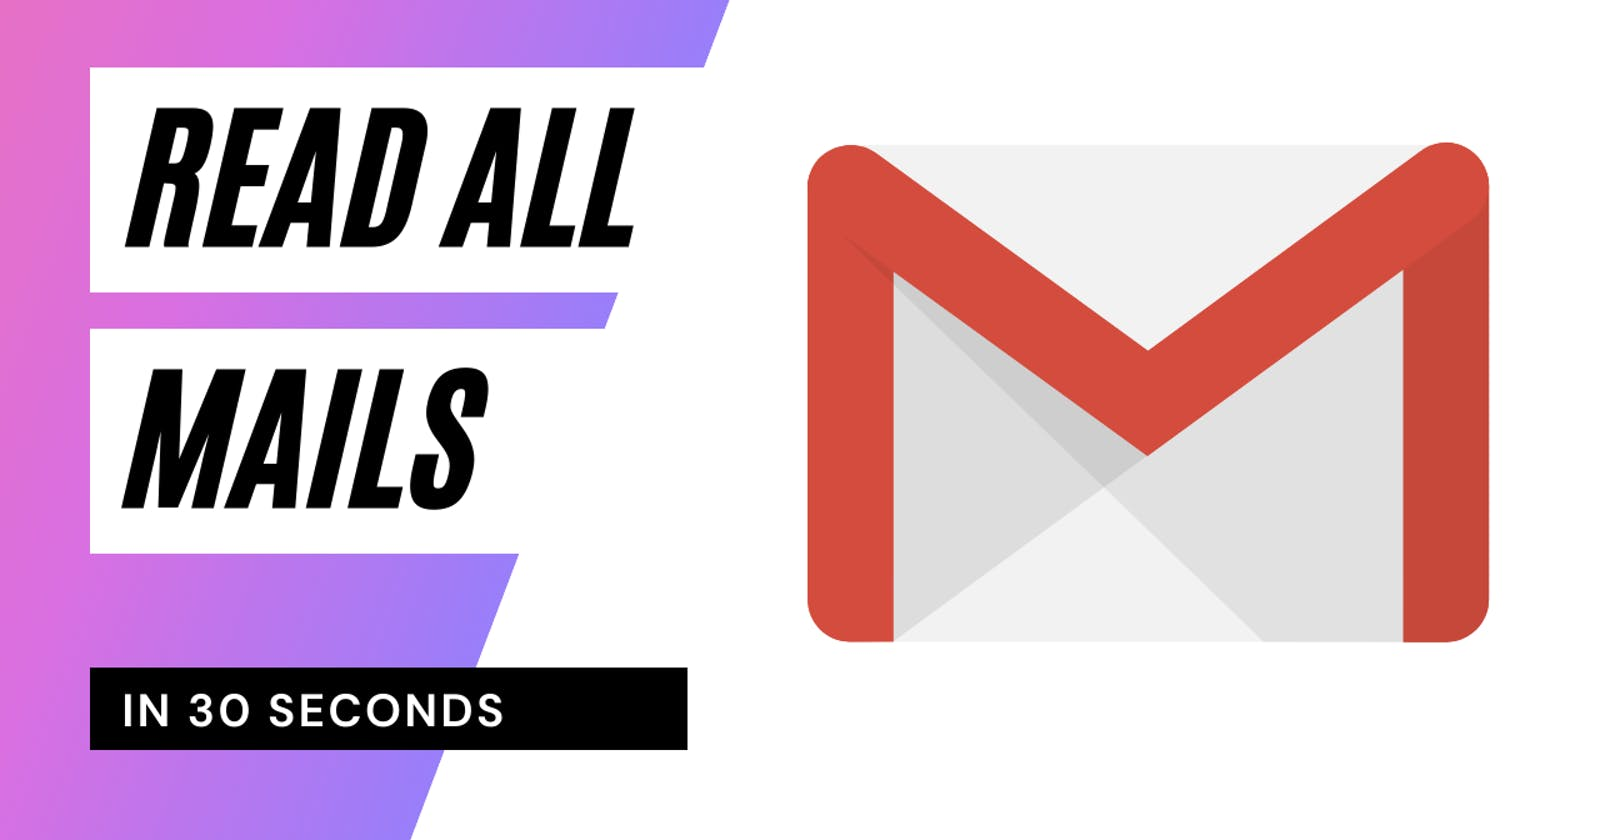 Read all emails in a single click!